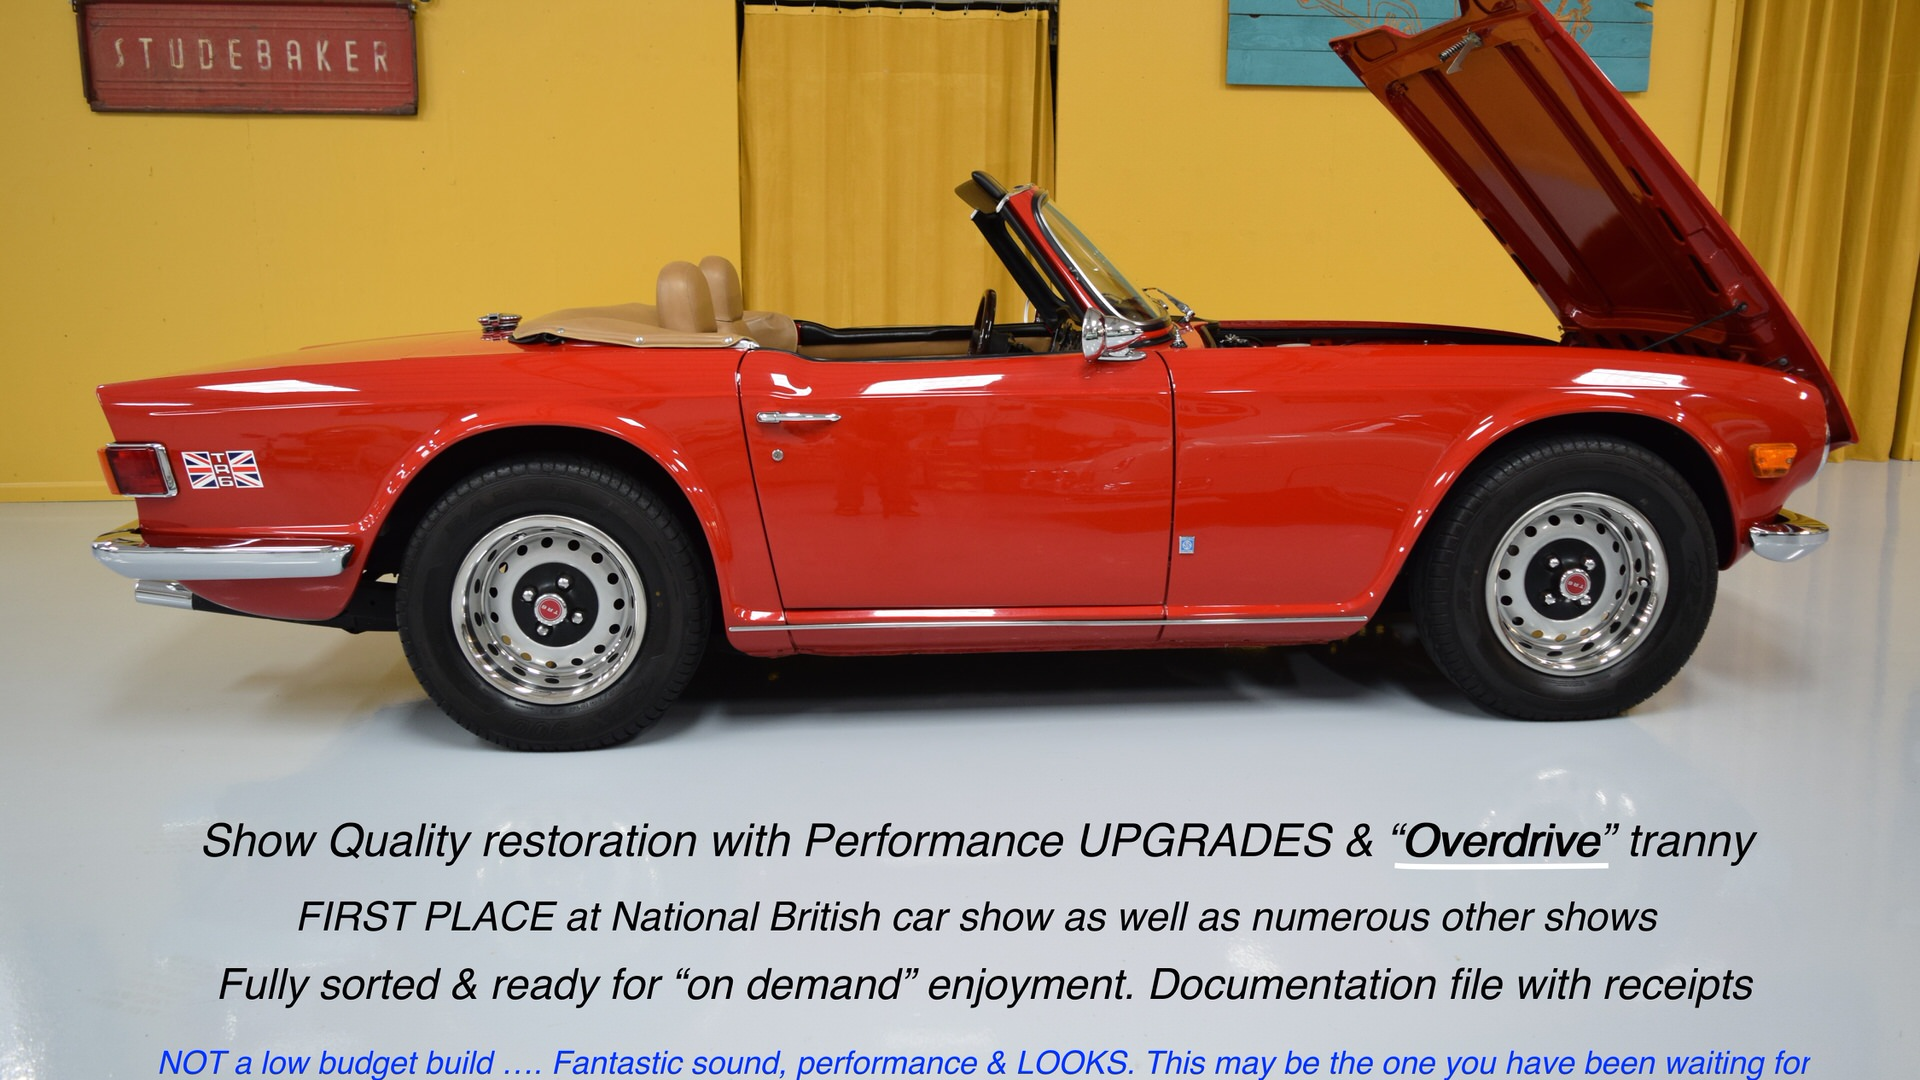 1972 Triumph Tr6 With Overdrive For Sale Myrodcom